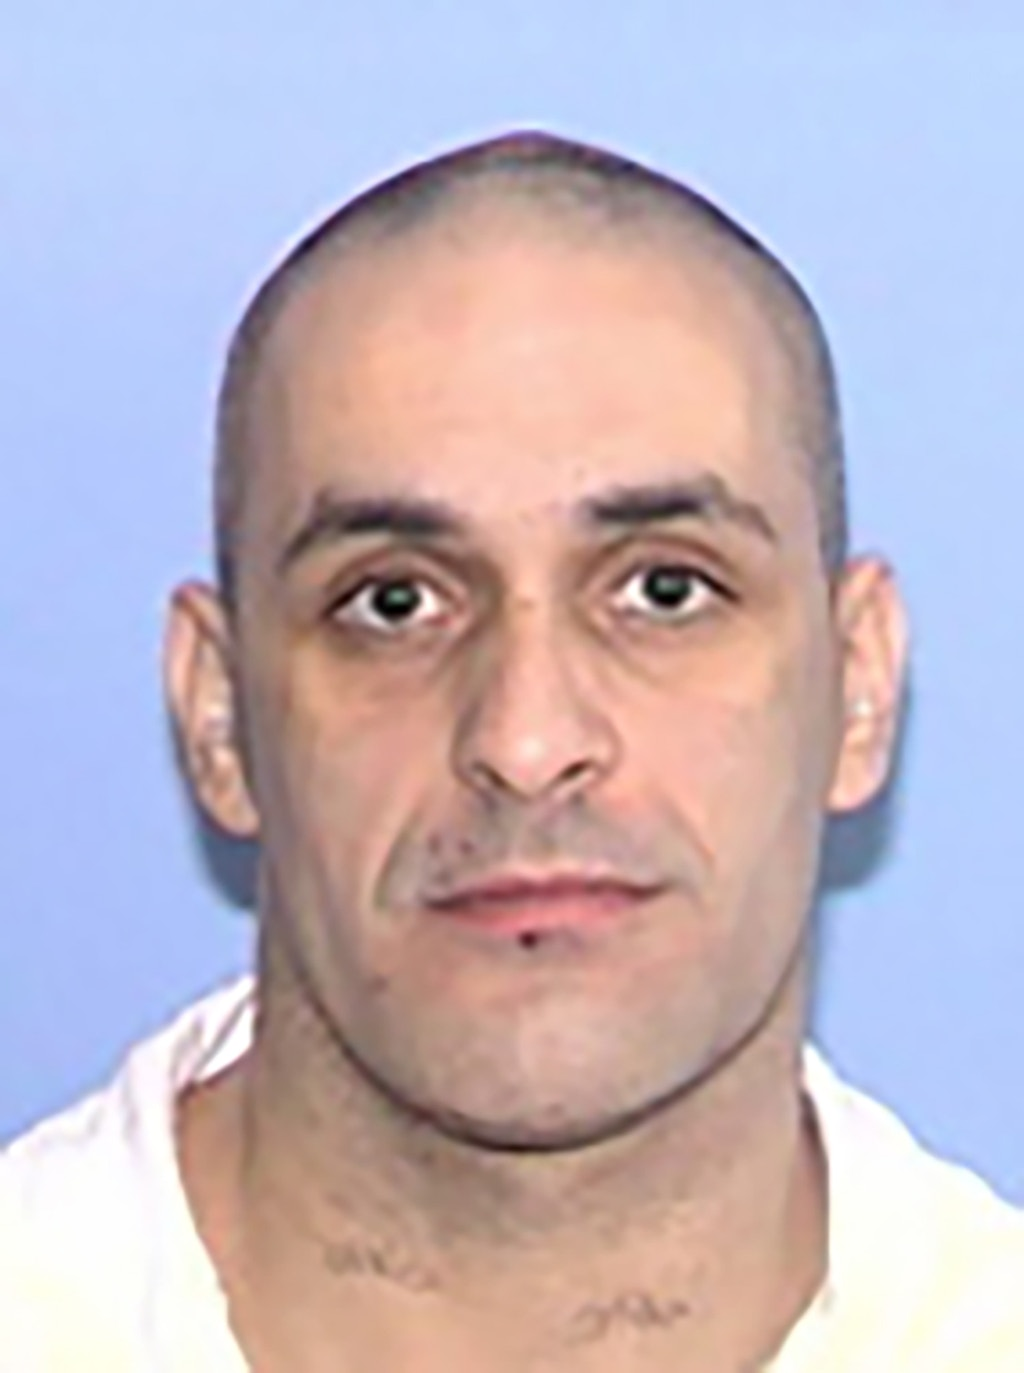 Texas Execution Stayed to Permit Proper Consideration of Intellectual Disability Claim